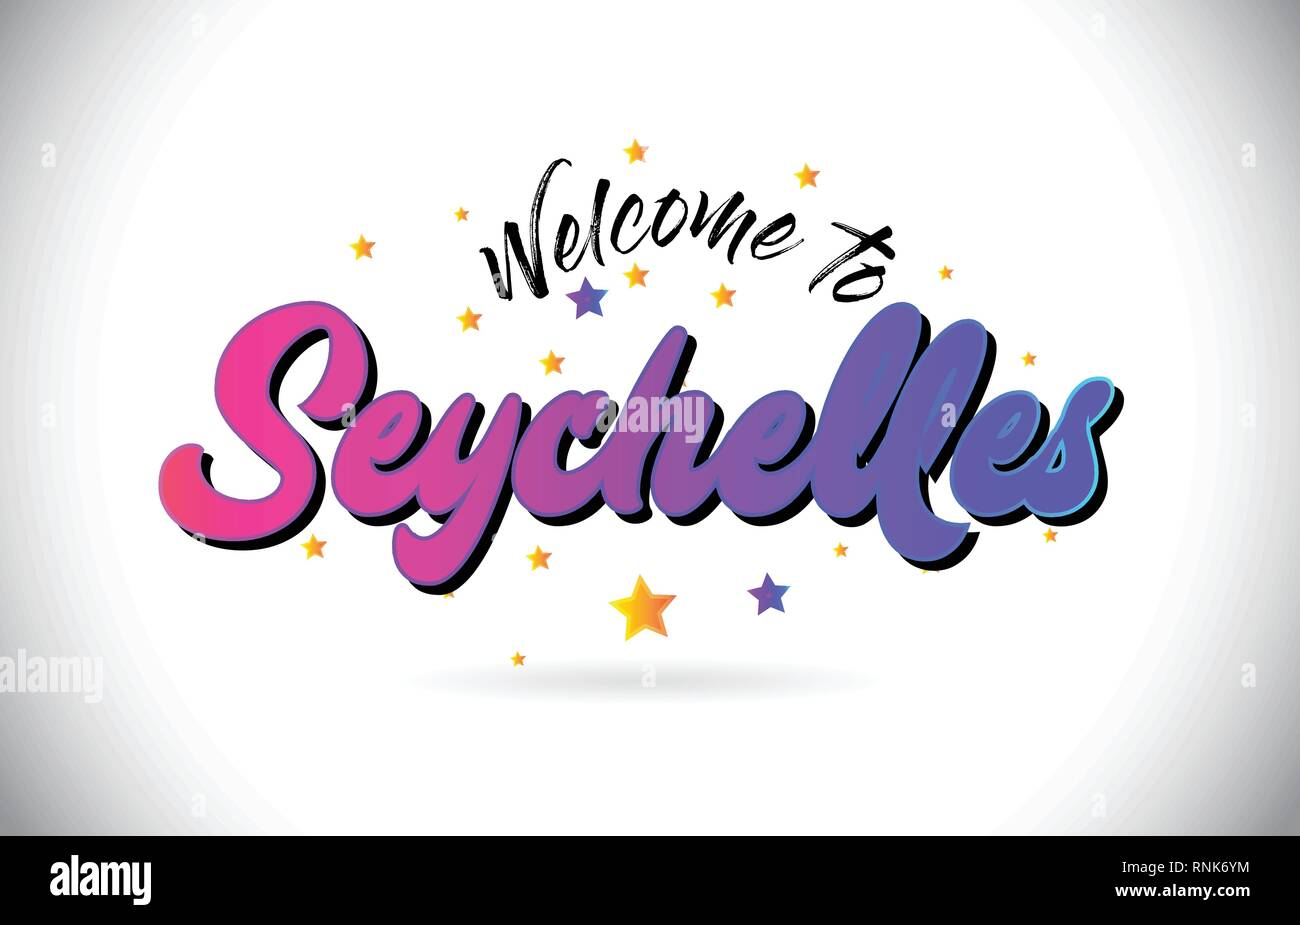 Seychelles Welcome To Word Text with Purple Pink Handwritten Font and Yellow Stars Shape Design Vector Illusration. Stock Vector